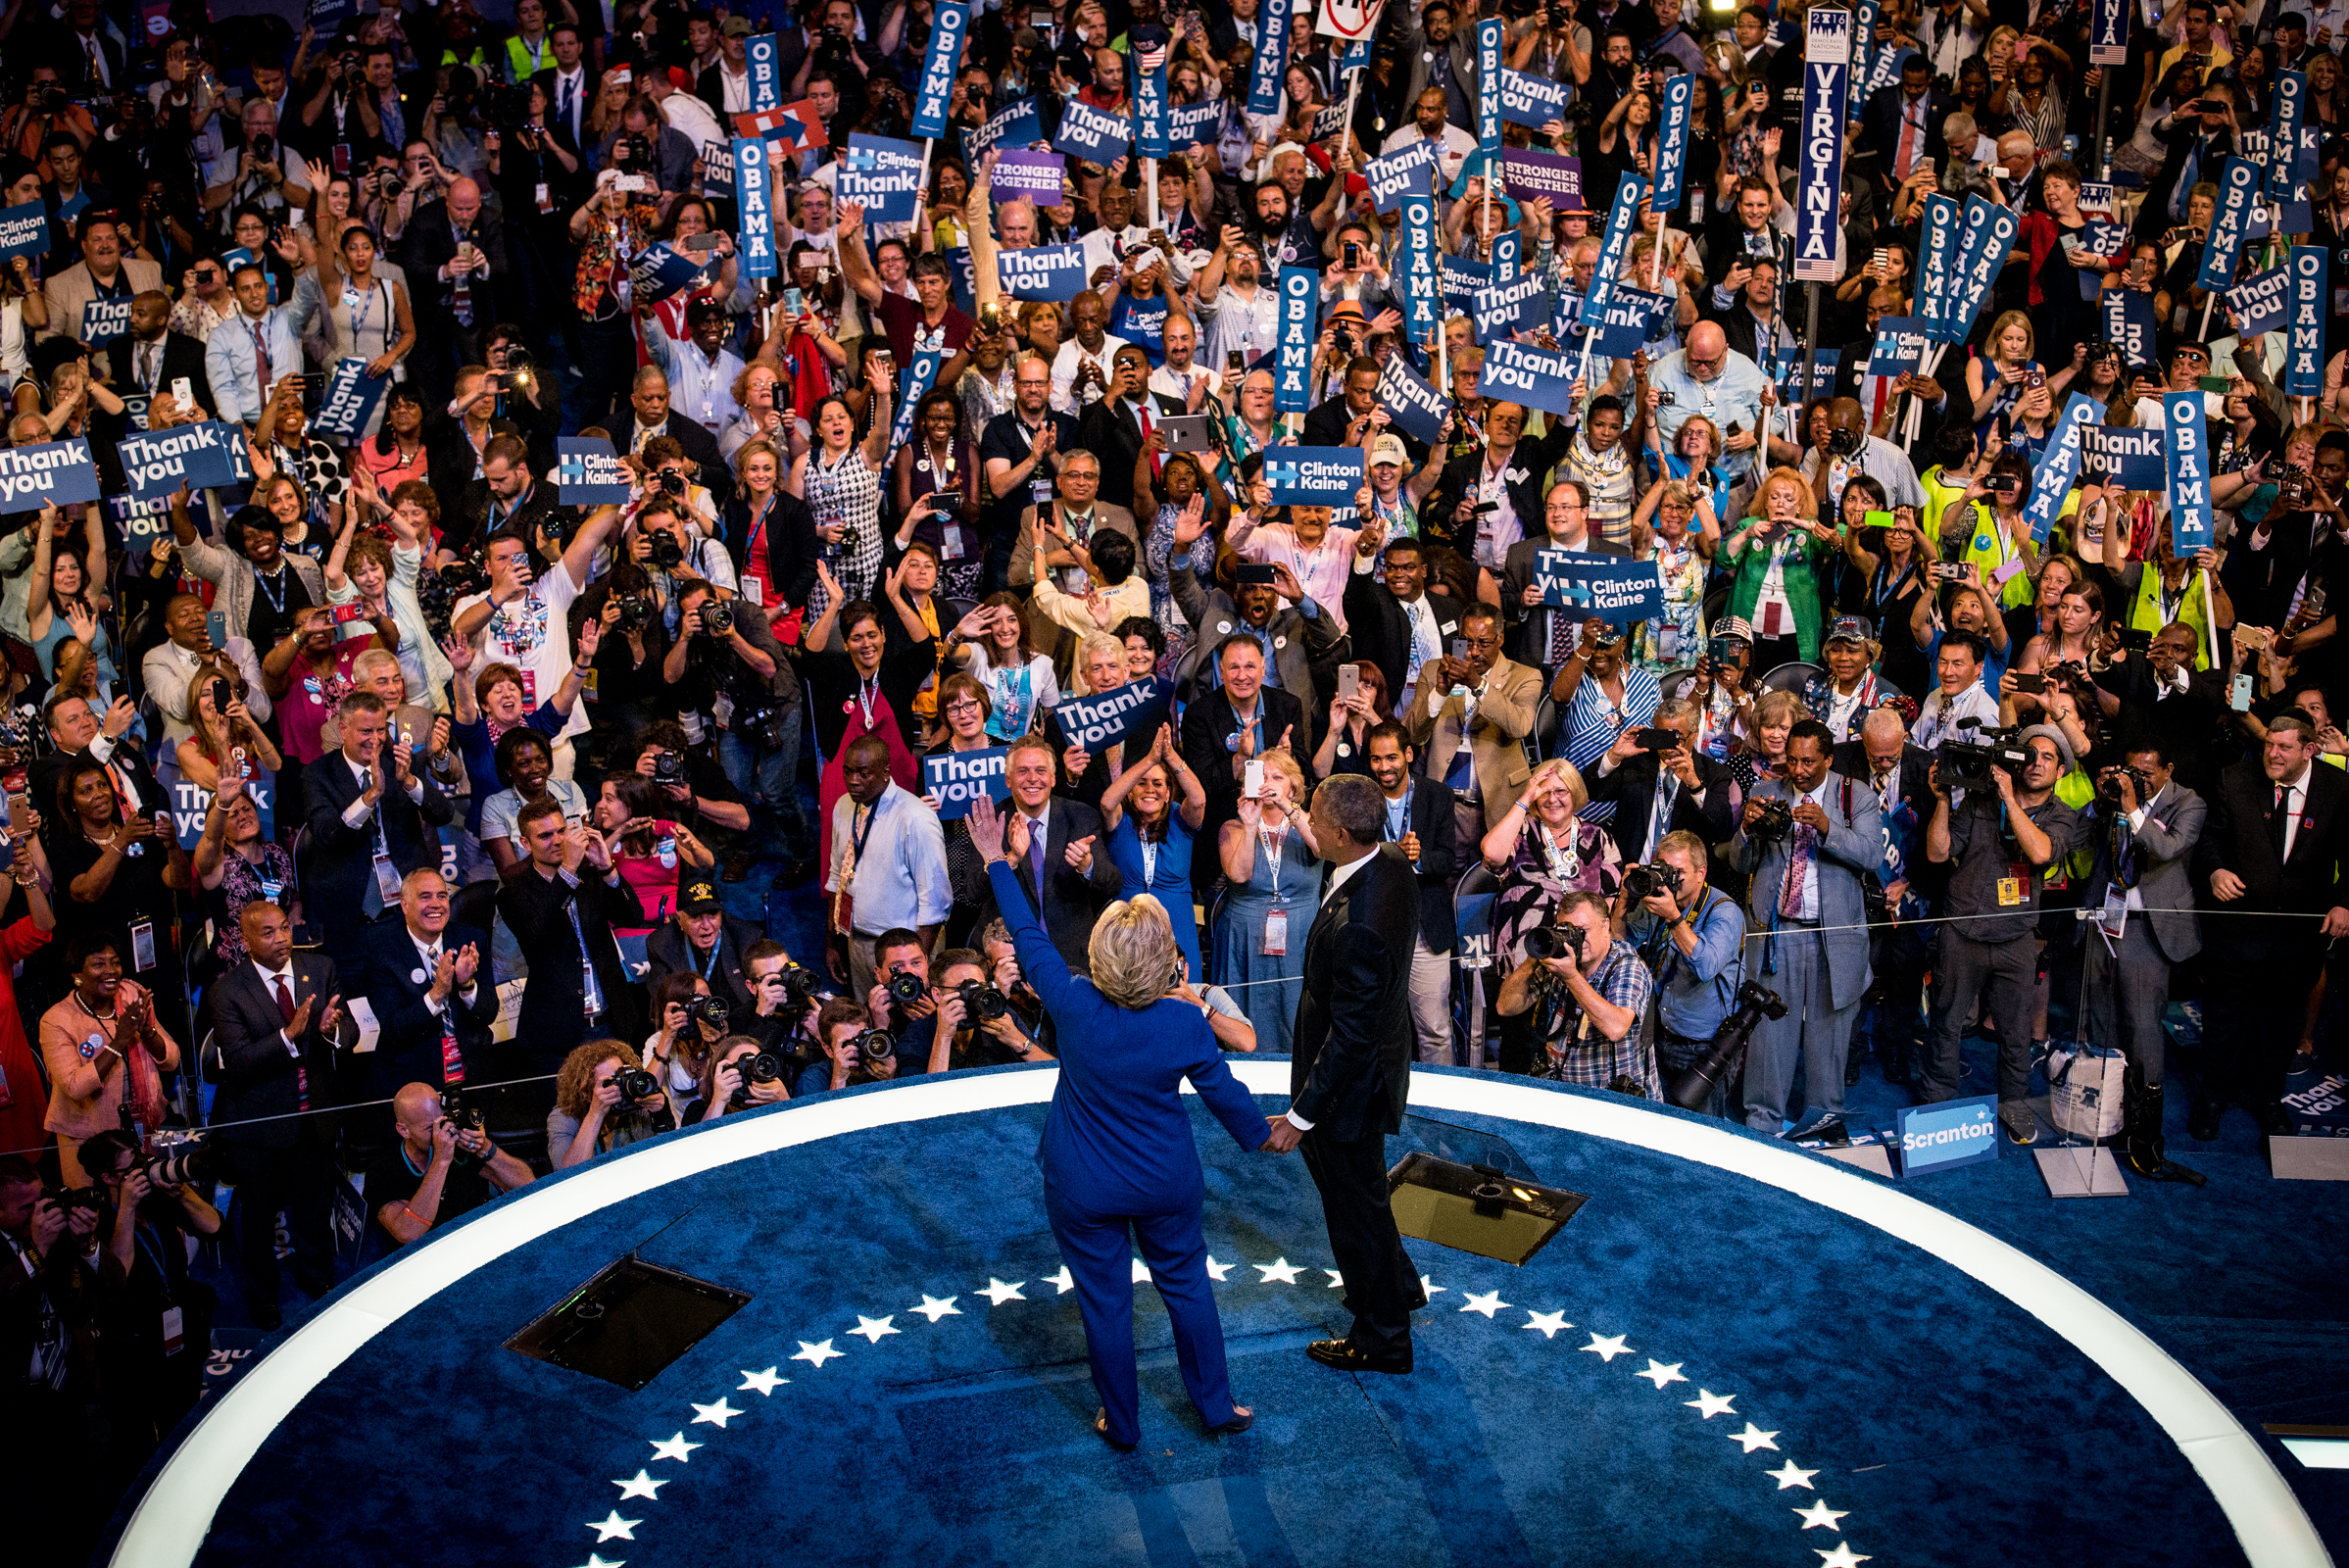 Democratic presidential nominee Hillary Clinton walks on to the platform with President Barack Obama after his speech during the Democratic National Convention at the Wells Fargo Center in Philadelphia on Wednesday July 27, 2016. (Michael Ares / Philadelphia Inquirer)